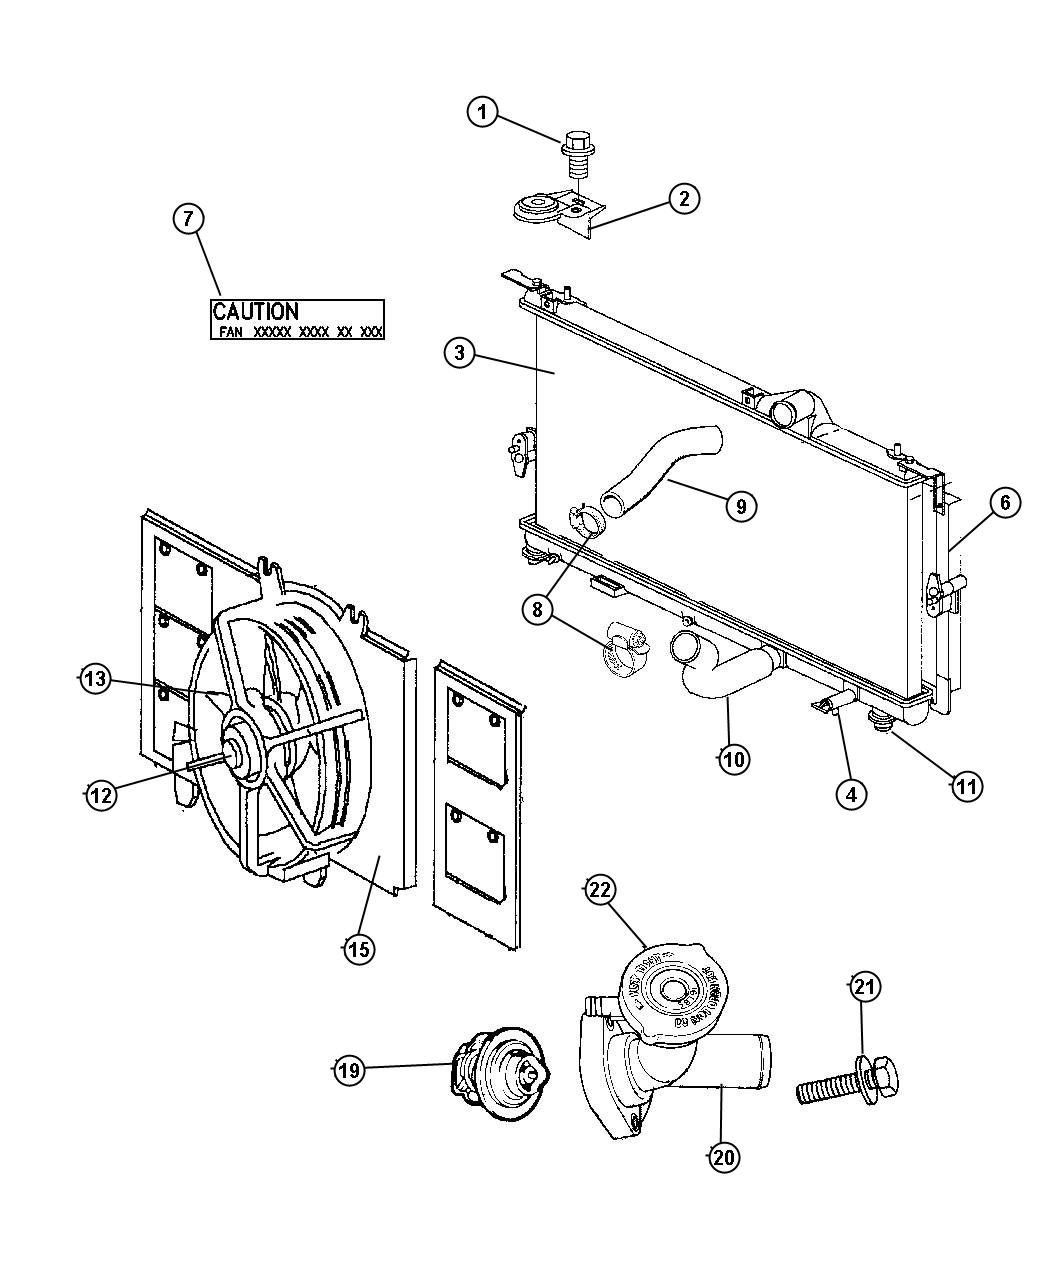 1998 Plymouth Neon Radiator and Related Parts.